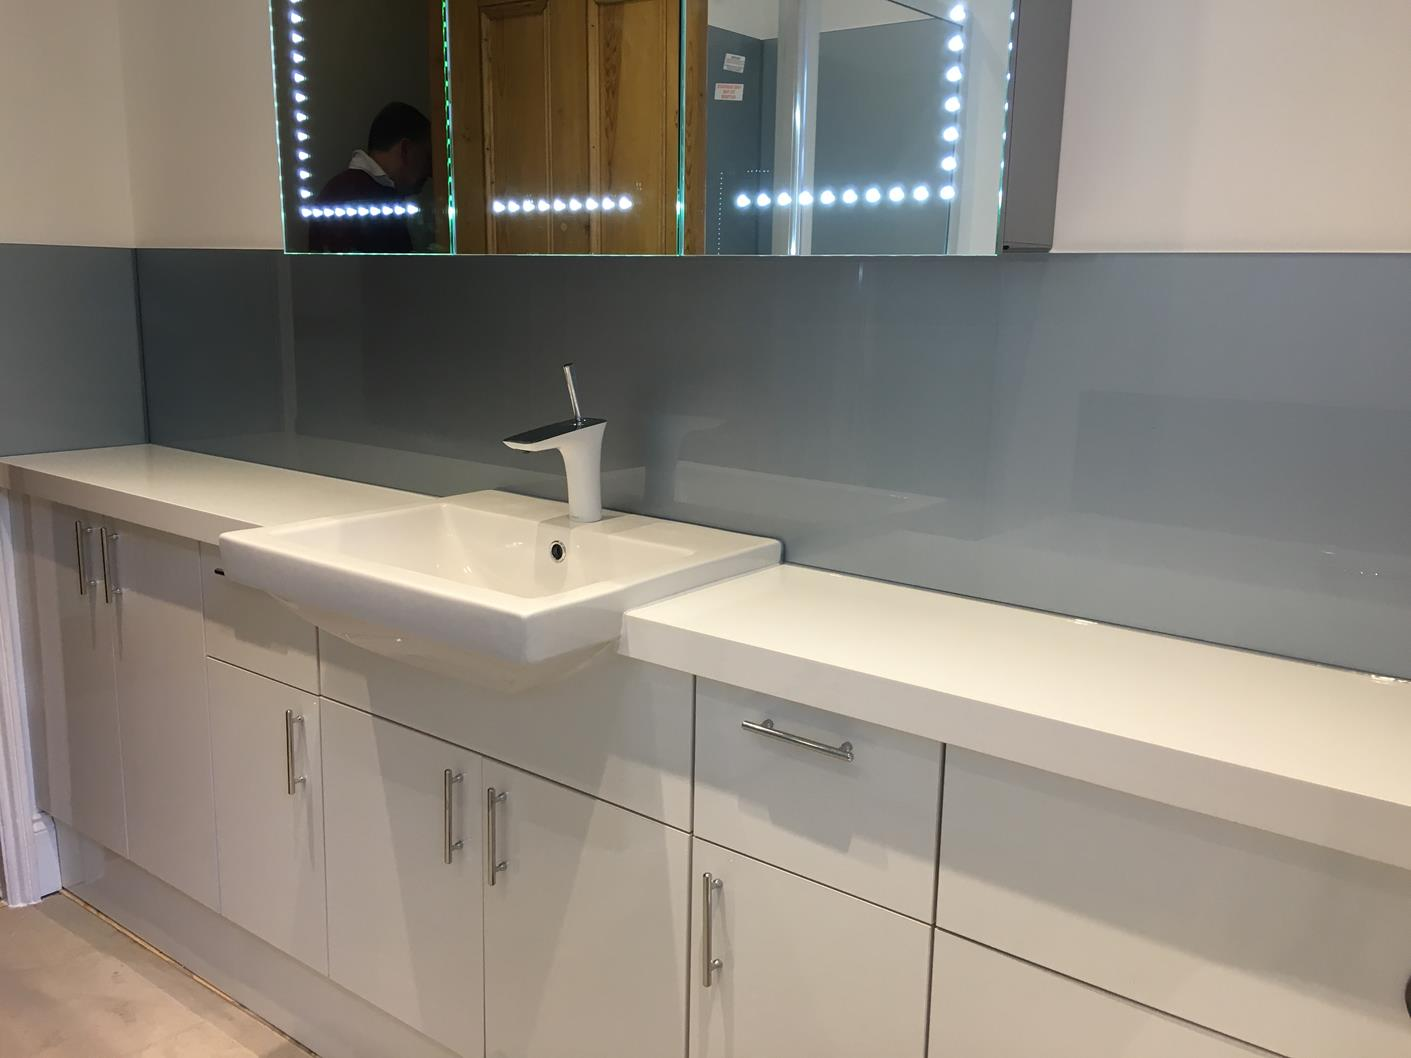 Glass splashbacks for bathroom sinks - Blue Bathroom Glass Splashback Click To See More Blue Bathroom Glass Splashback Click To See More